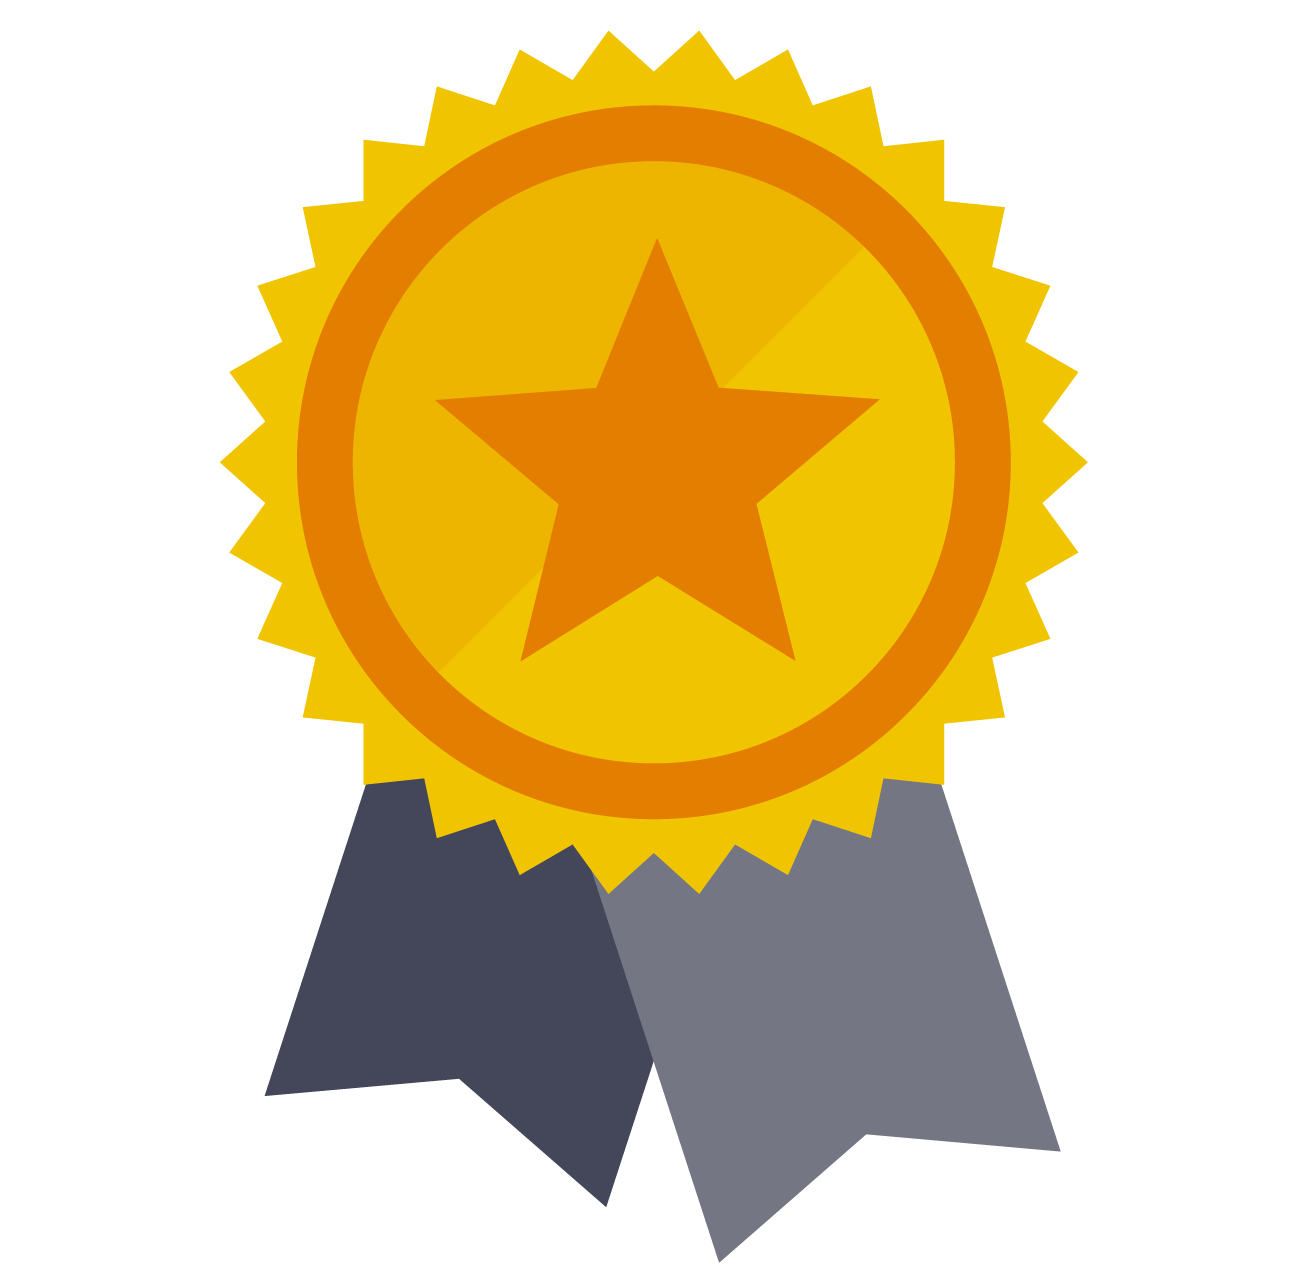 Five star rating clipart clip art free library Image - IMG 3872.PNG | Lumber Tycoon 2 Wikia | FANDOM powered by Wikia clip art free library